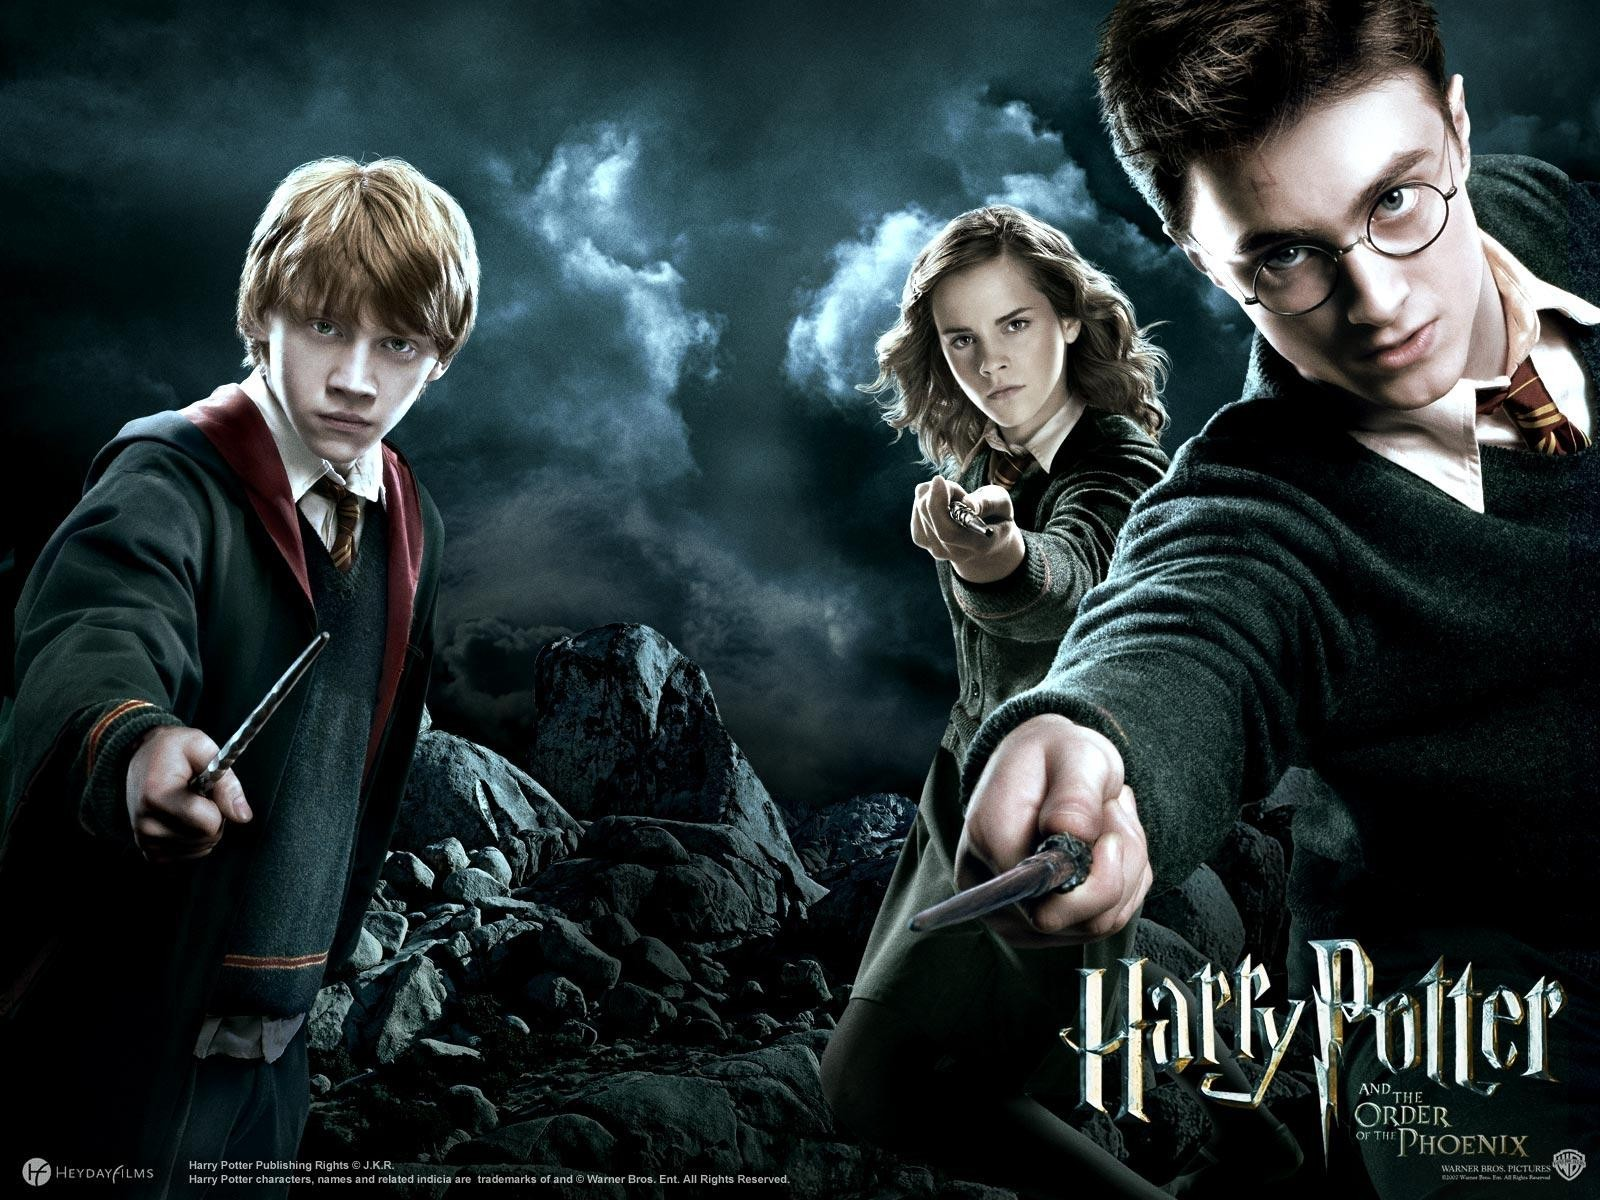 http://2.bp.blogspot.com/-BHqWu4D_Lfg/TiKD11HmTJI/AAAAAAAAAG8/743Yar37bUs/s1600/Harry-Potter-And-The-Deathly-Hallows-Part-2.jpg